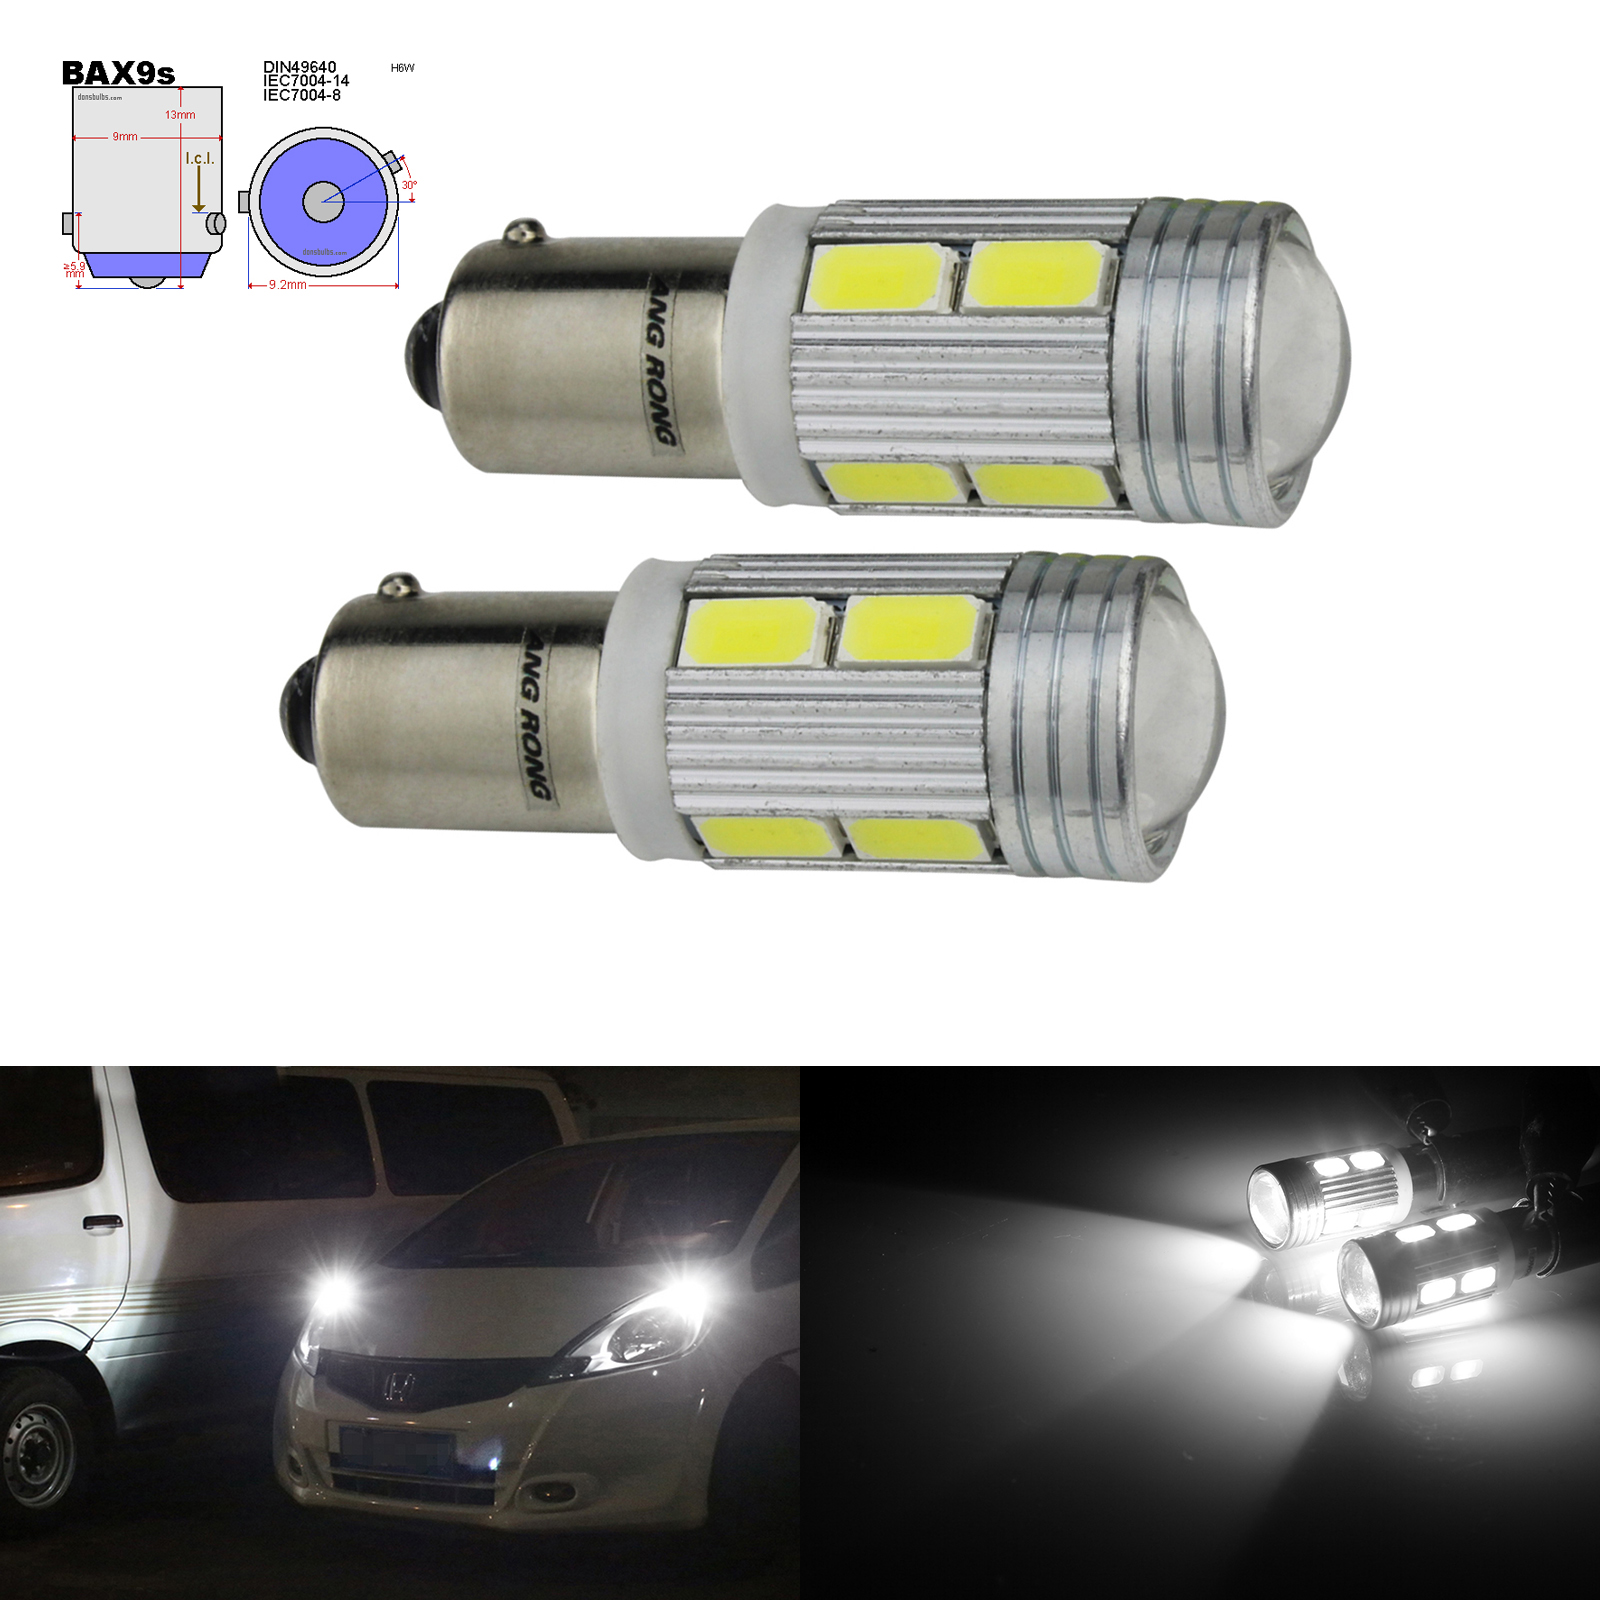 ANGRONG 2pcs H6W BAX9S Bulbs 10 LED 8W Parking Sidelight White For BMW 3 Series F30 F31 F34